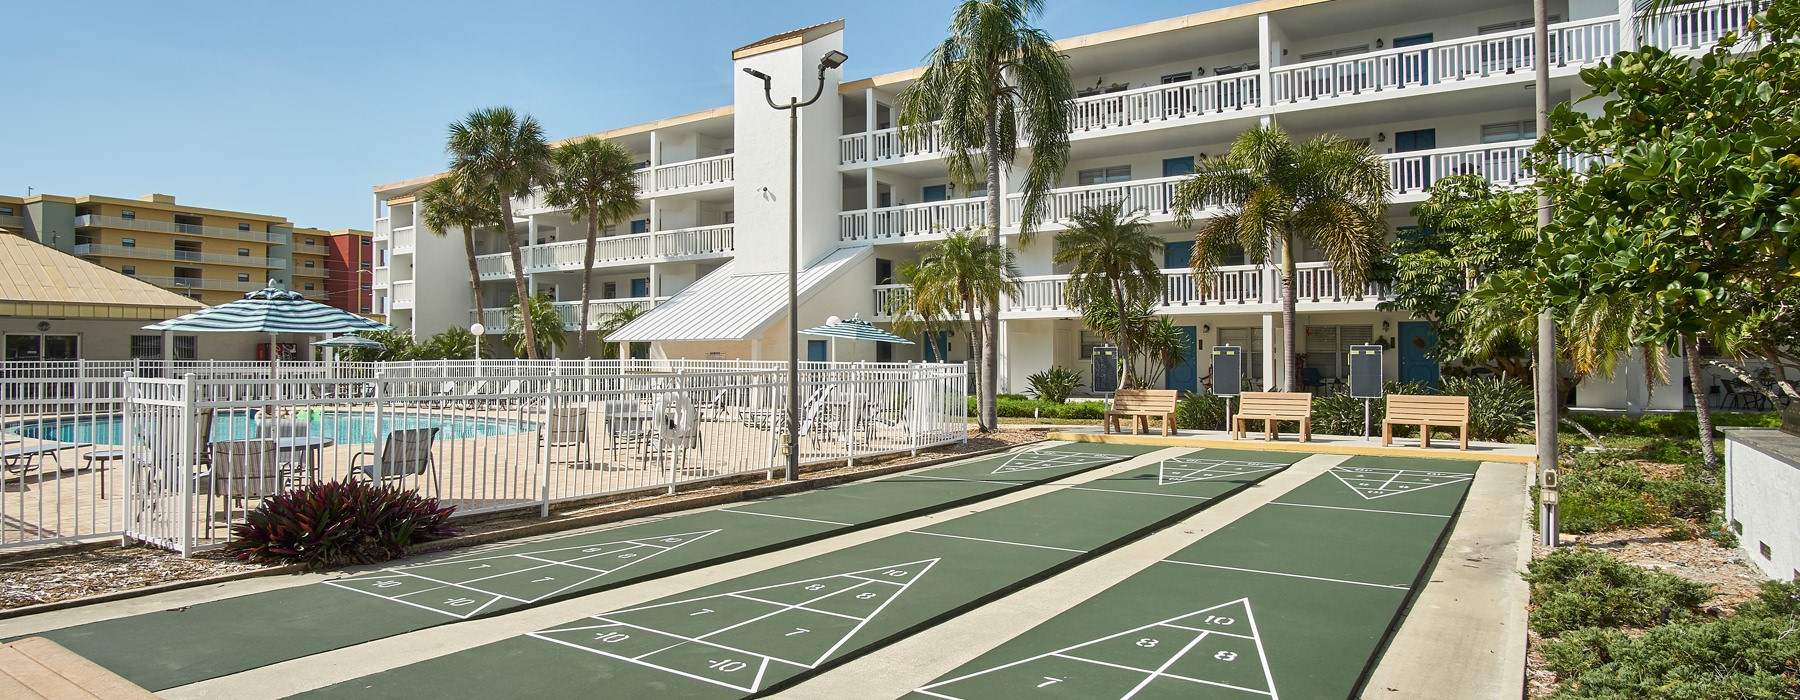 shuffle board courts next to swimming pool